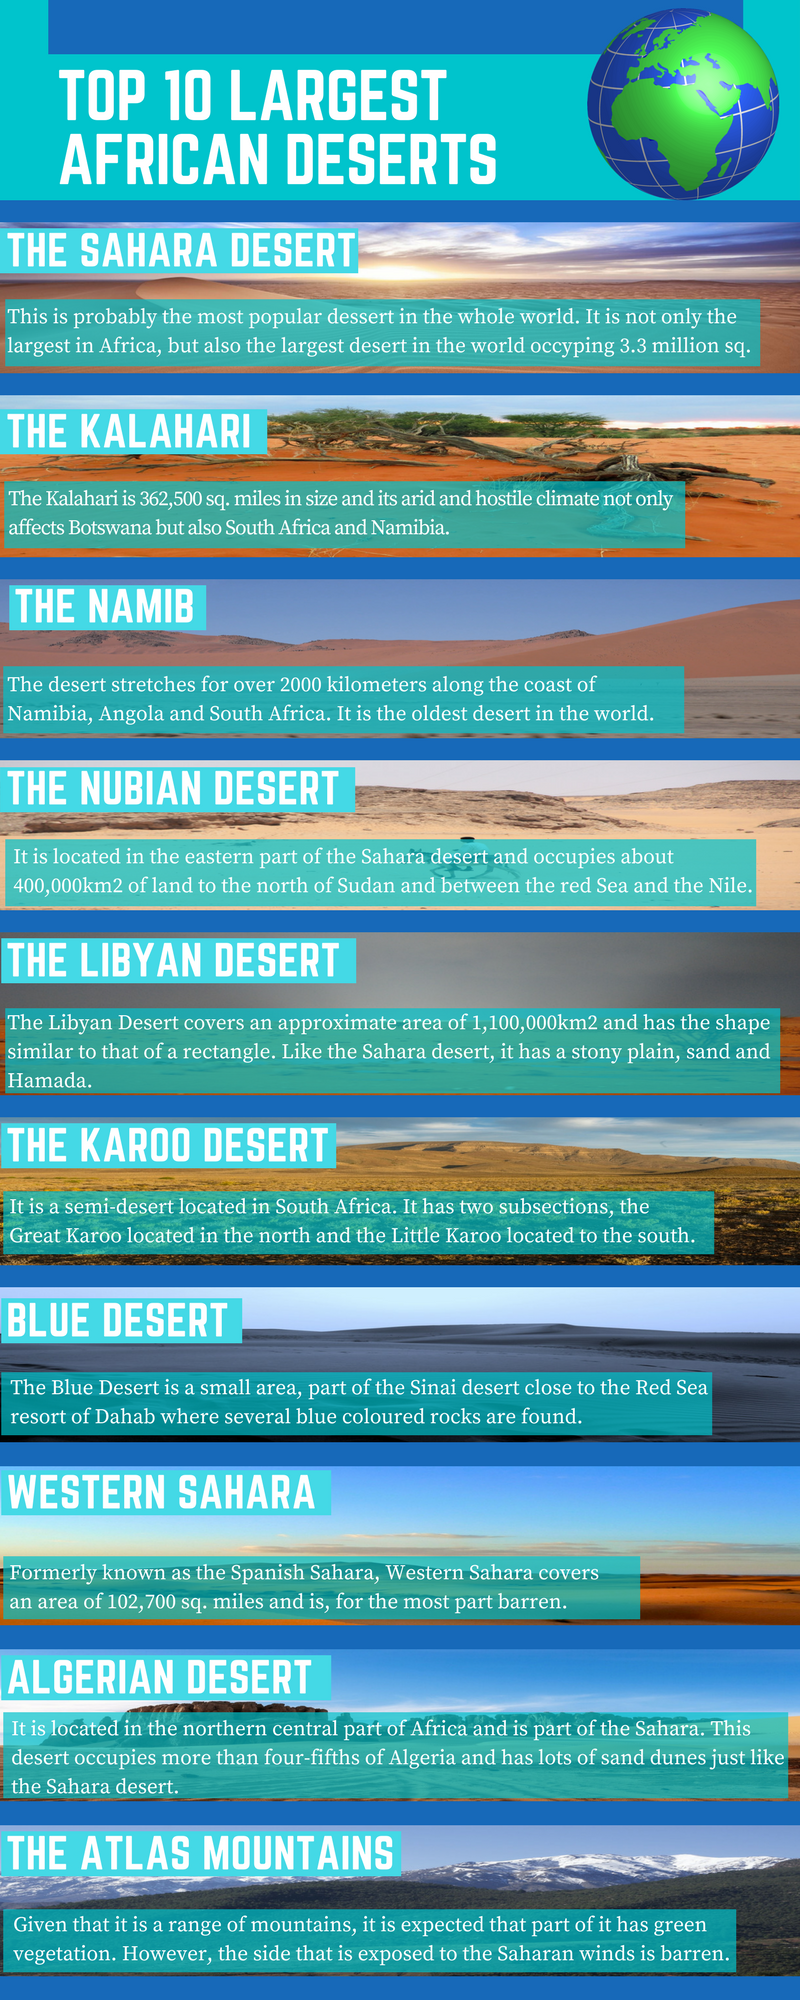 Top 10 largest deserts in Africa